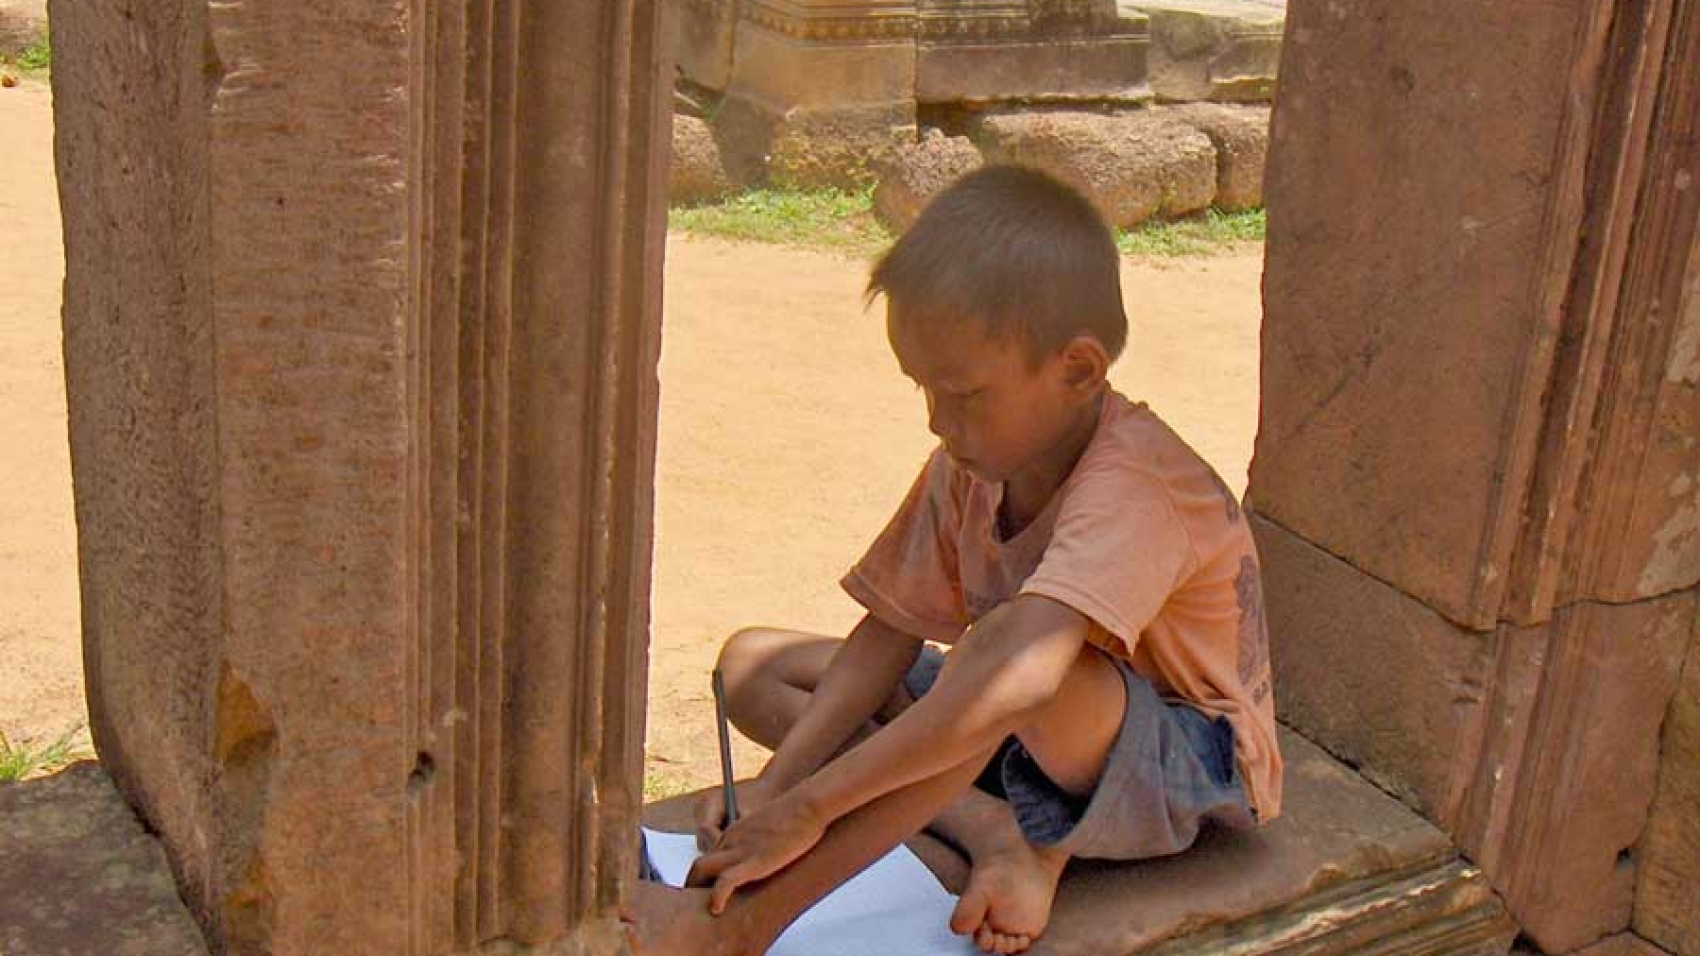 Young boy drawing in temple ruins near Siem Reap